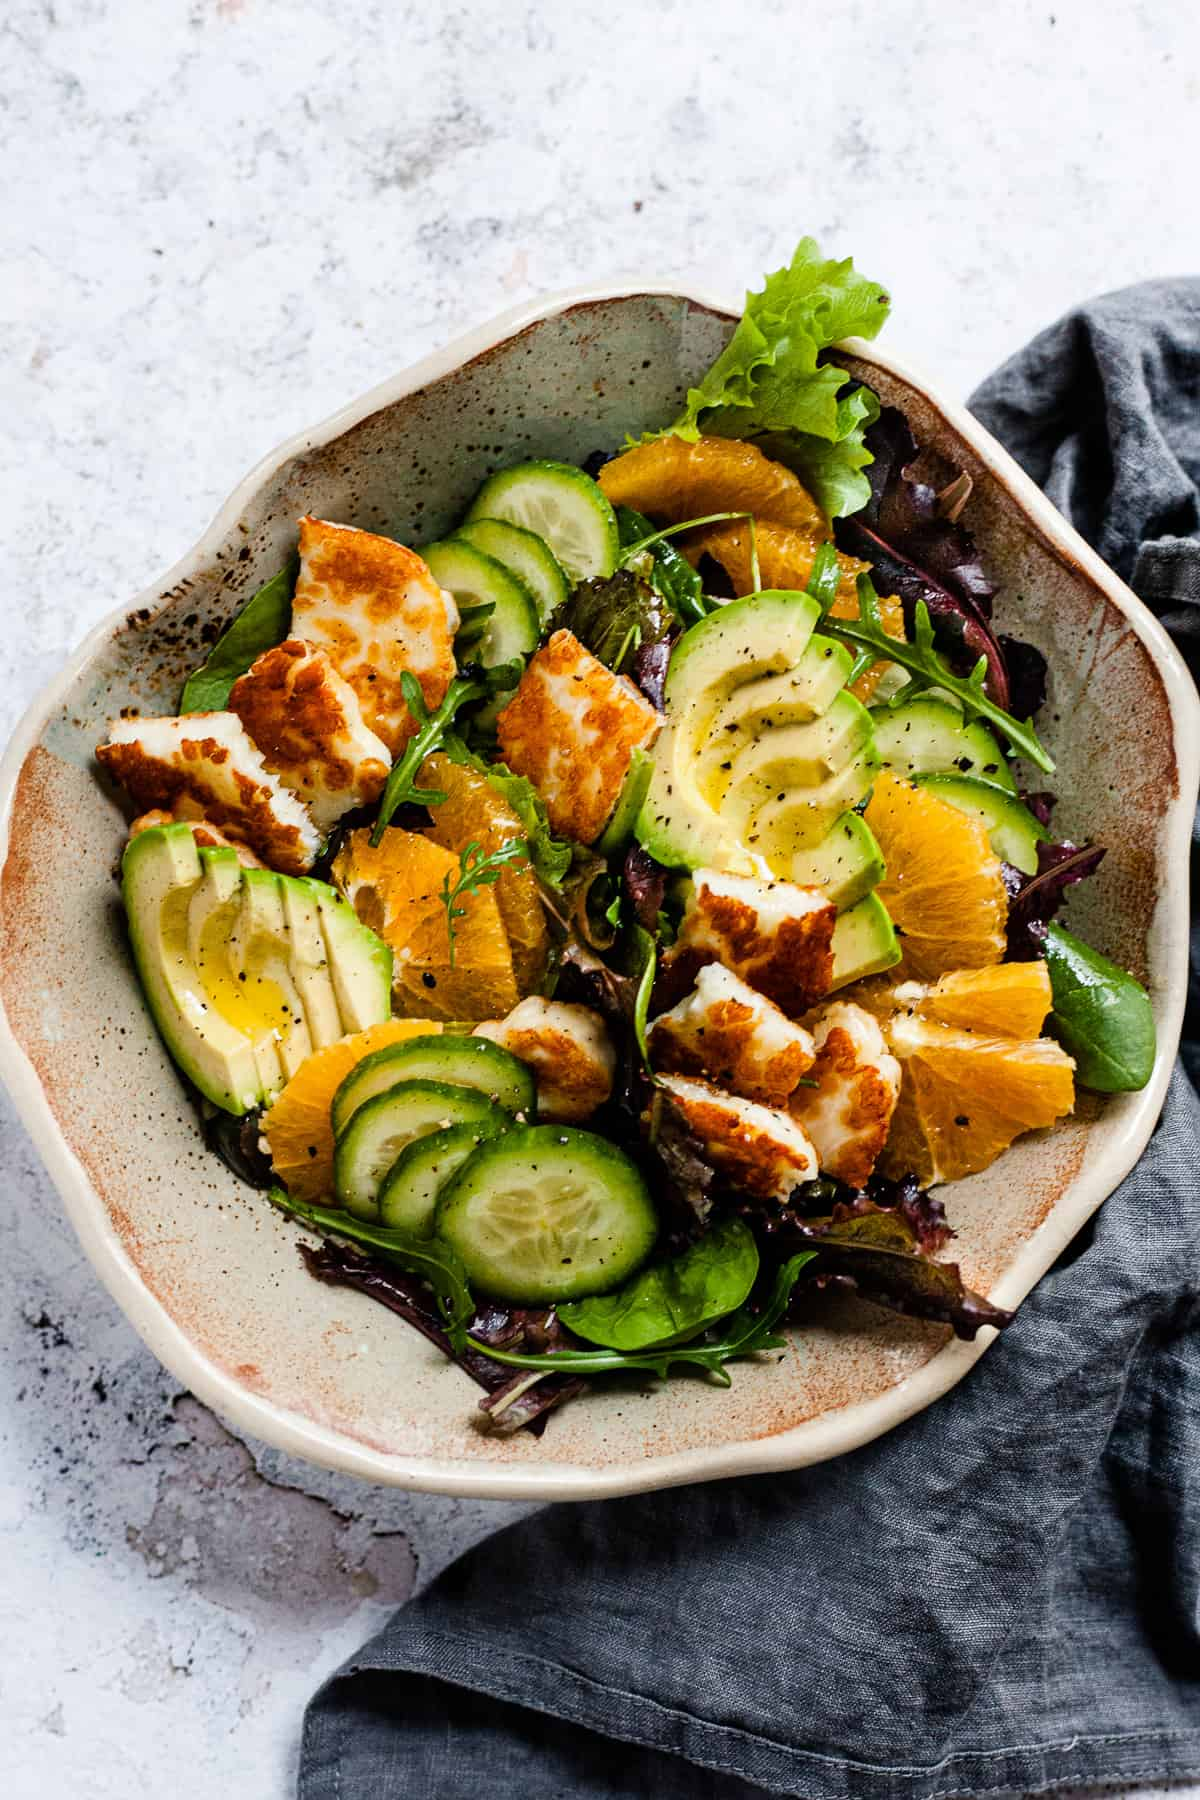 pan-fried halloumi salad in a bowl on a white table.